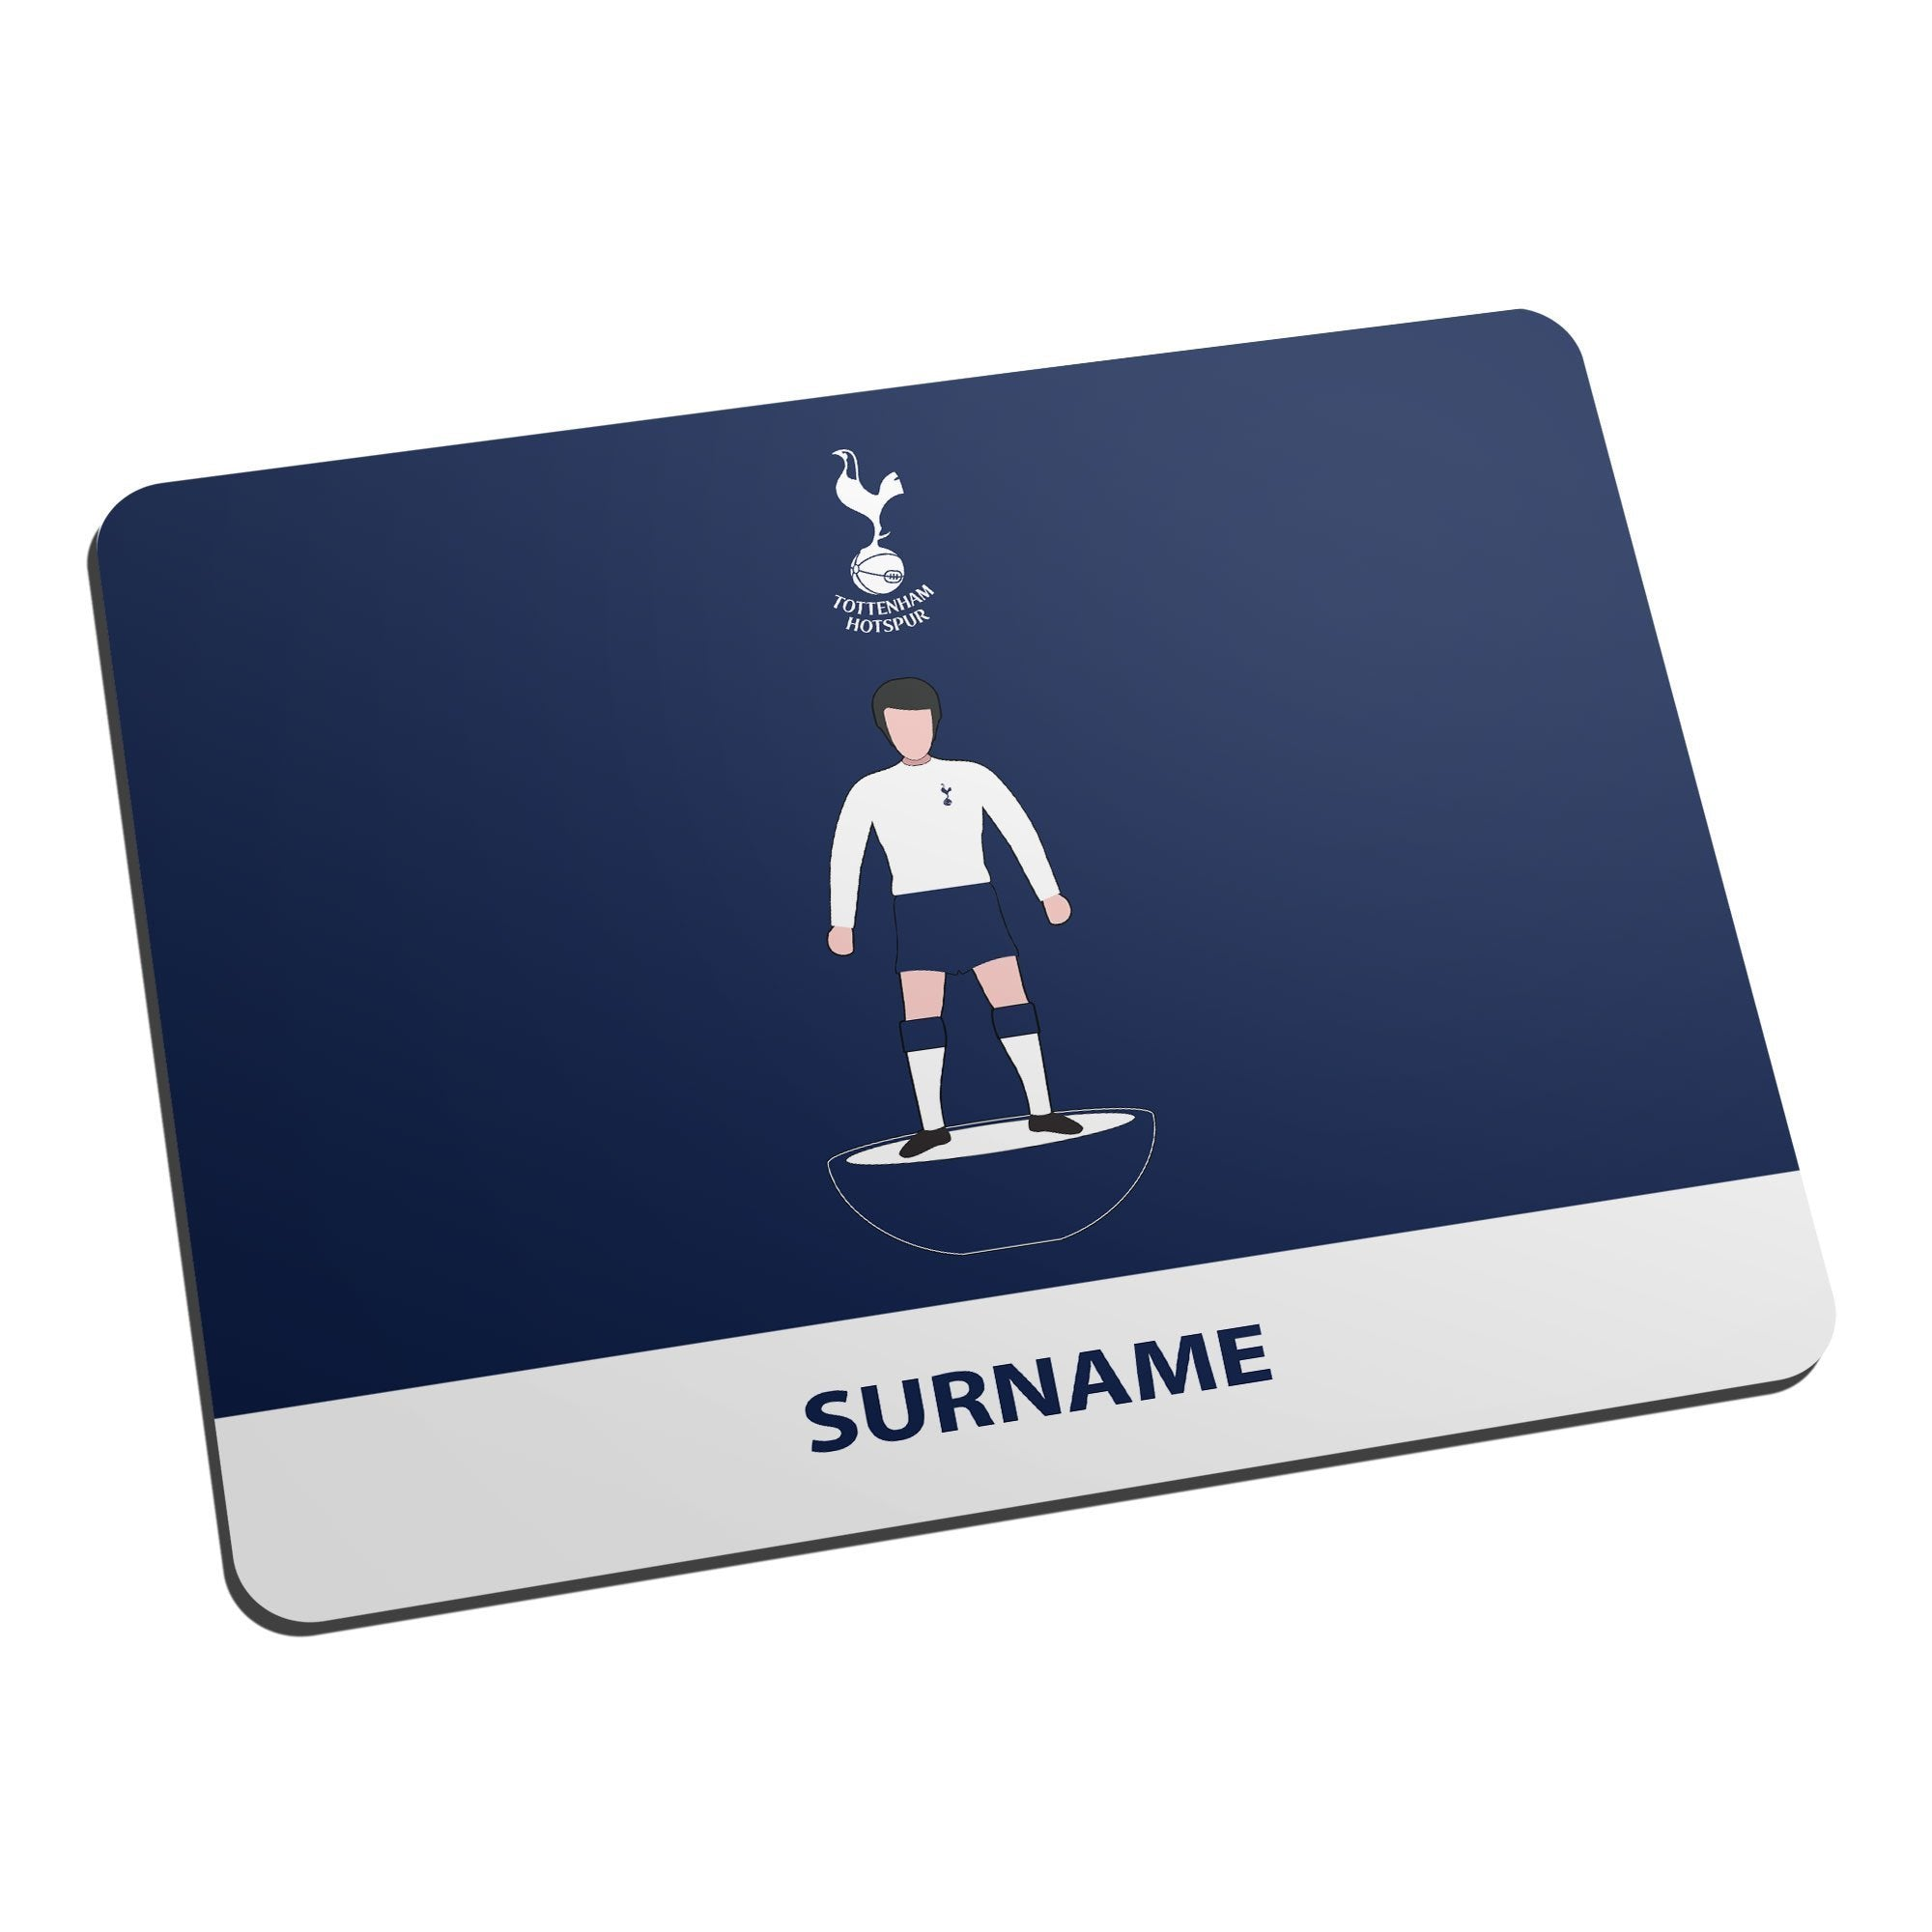 Personalised Tottenham Hotspur Player Figure Mouse Mat, Electronics by Glamorous Gifts